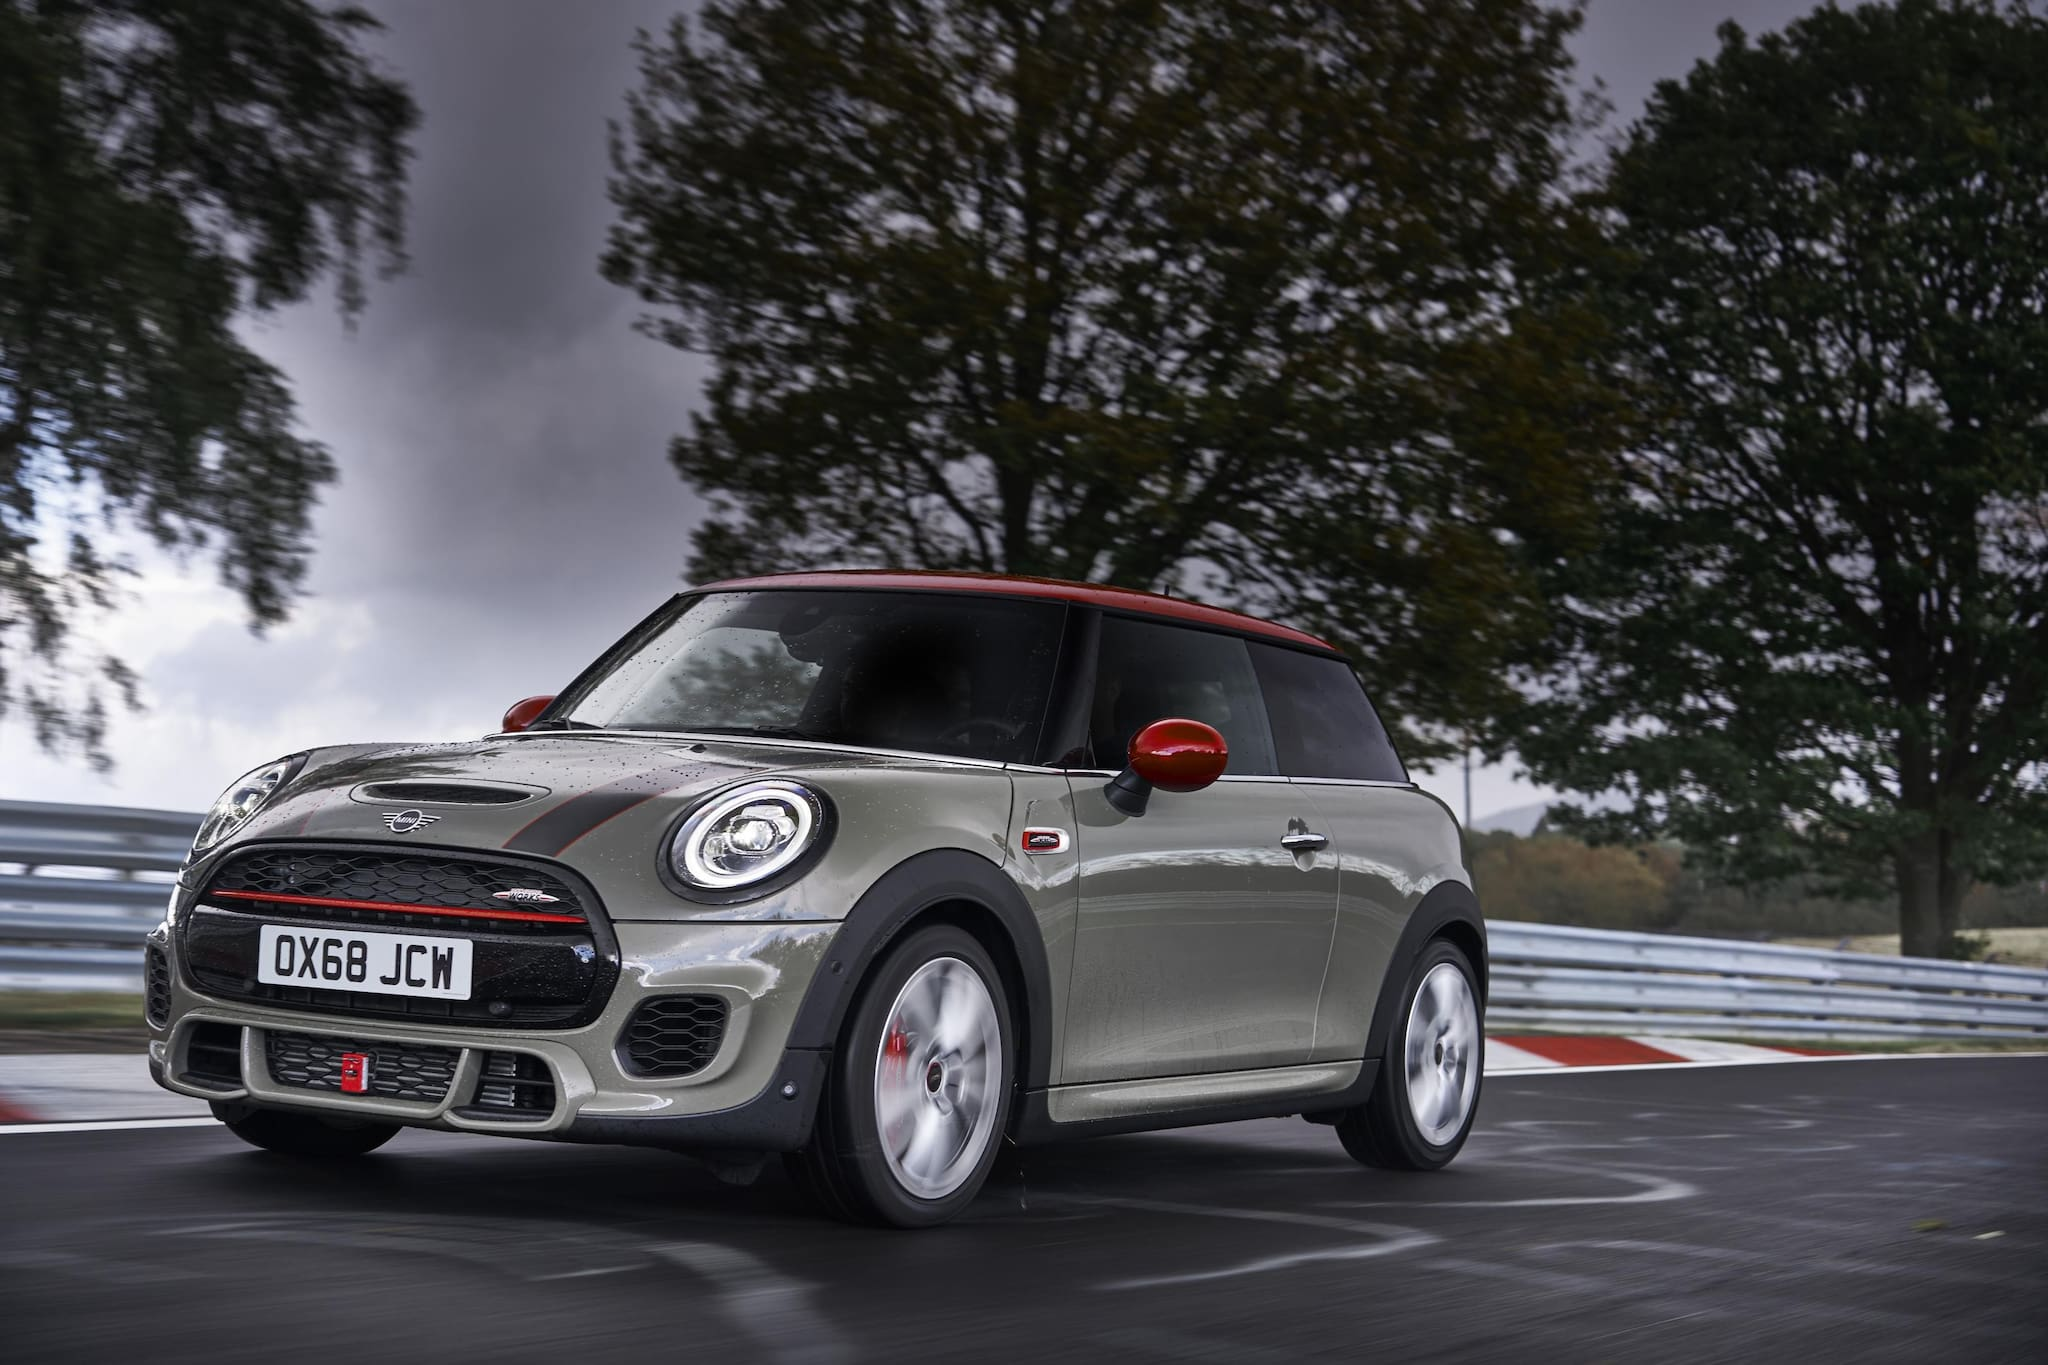 Mini JCW Launched In India; Priced At Rs 43.5 Lakh